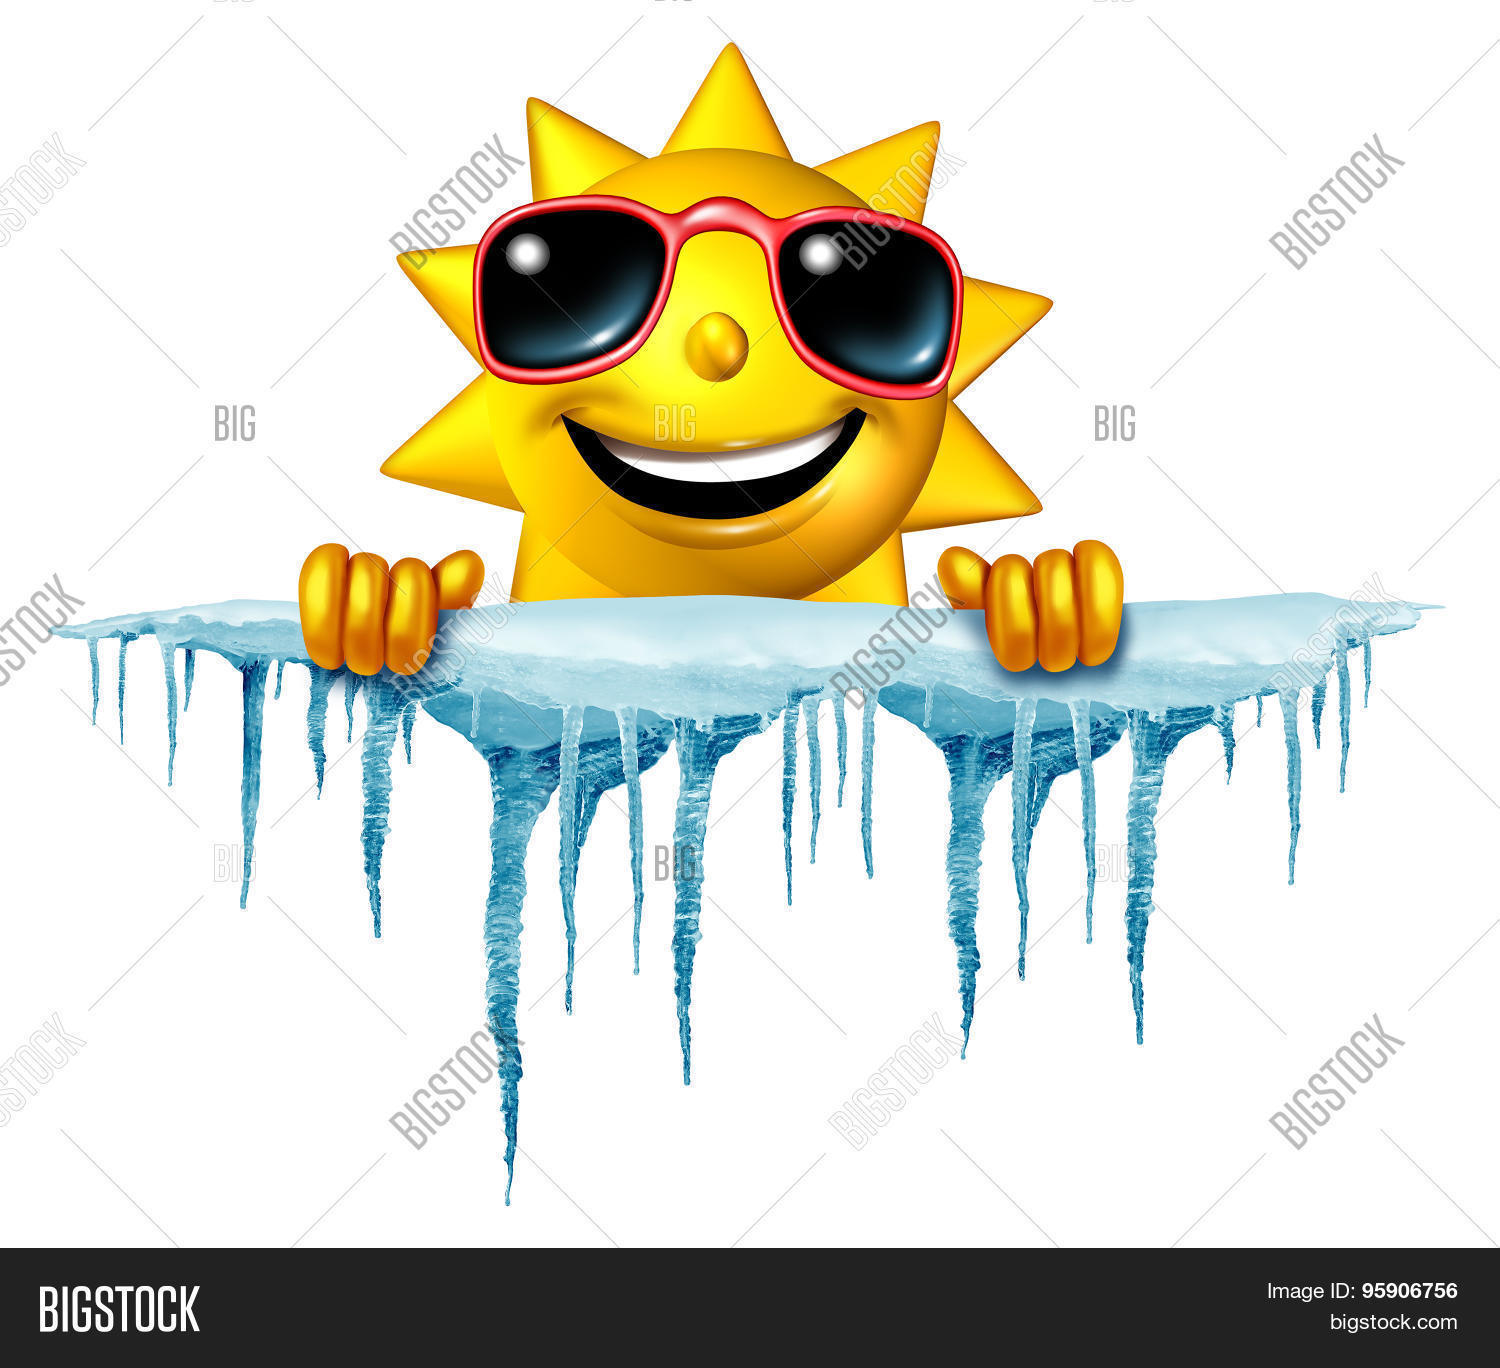 Summer Cool Down Image Amp Photo Free Trial